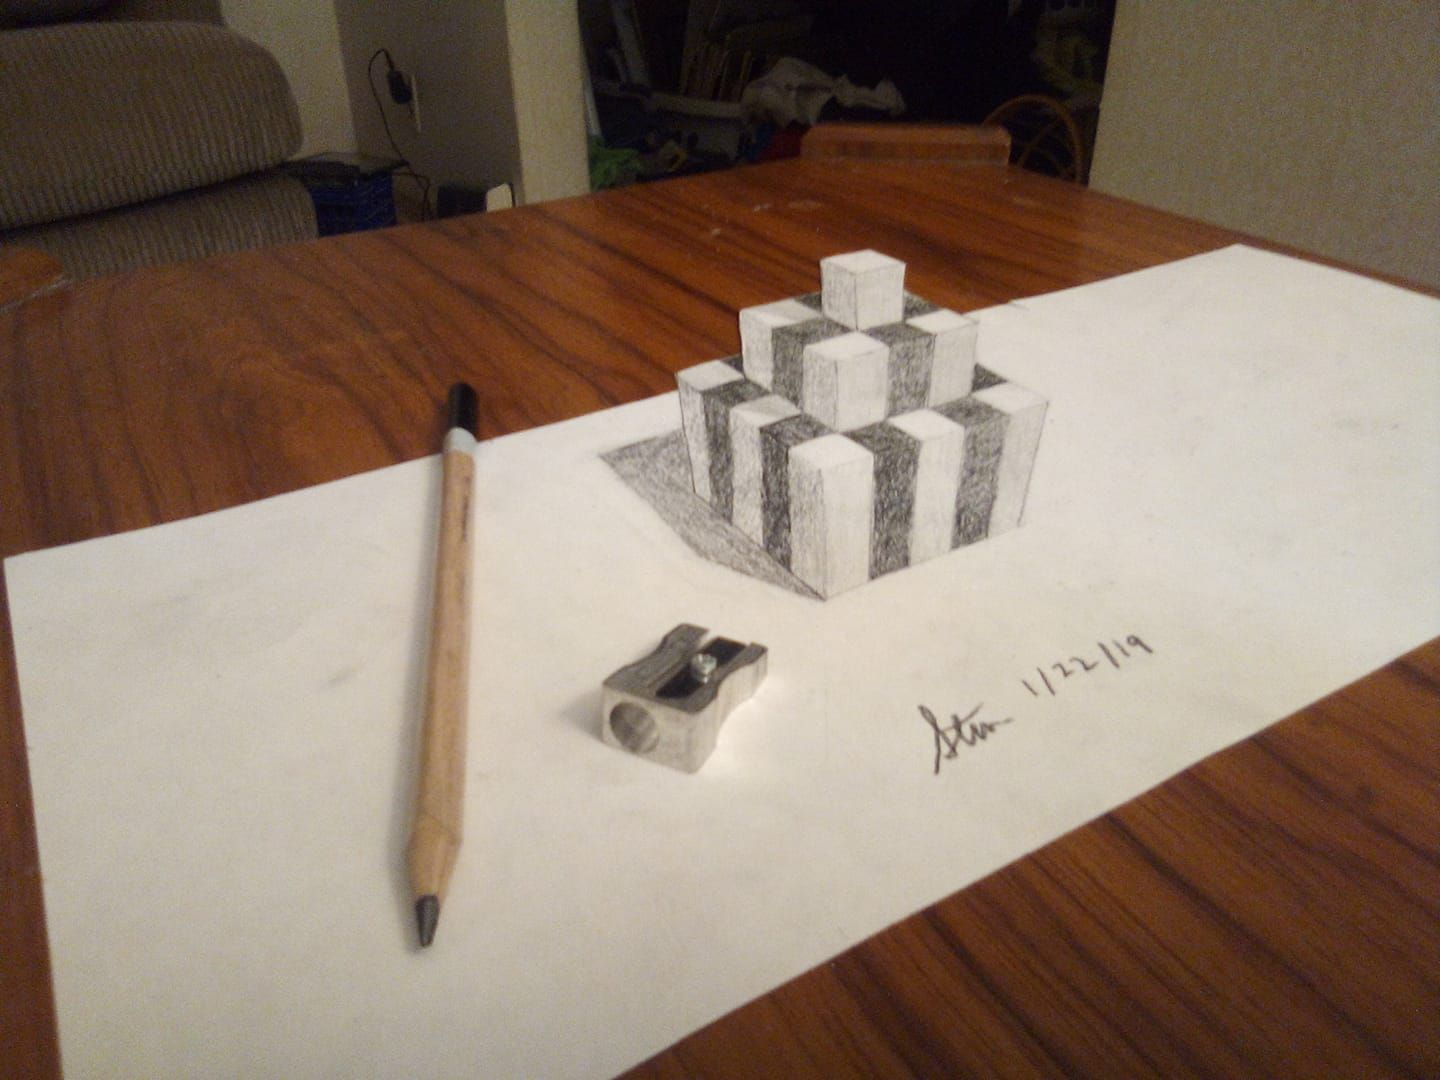 I M Exploring 3d Art Now New To Me Type Of Drawing But Fun To Do Types Of Drawing Art Photography Sketch Book